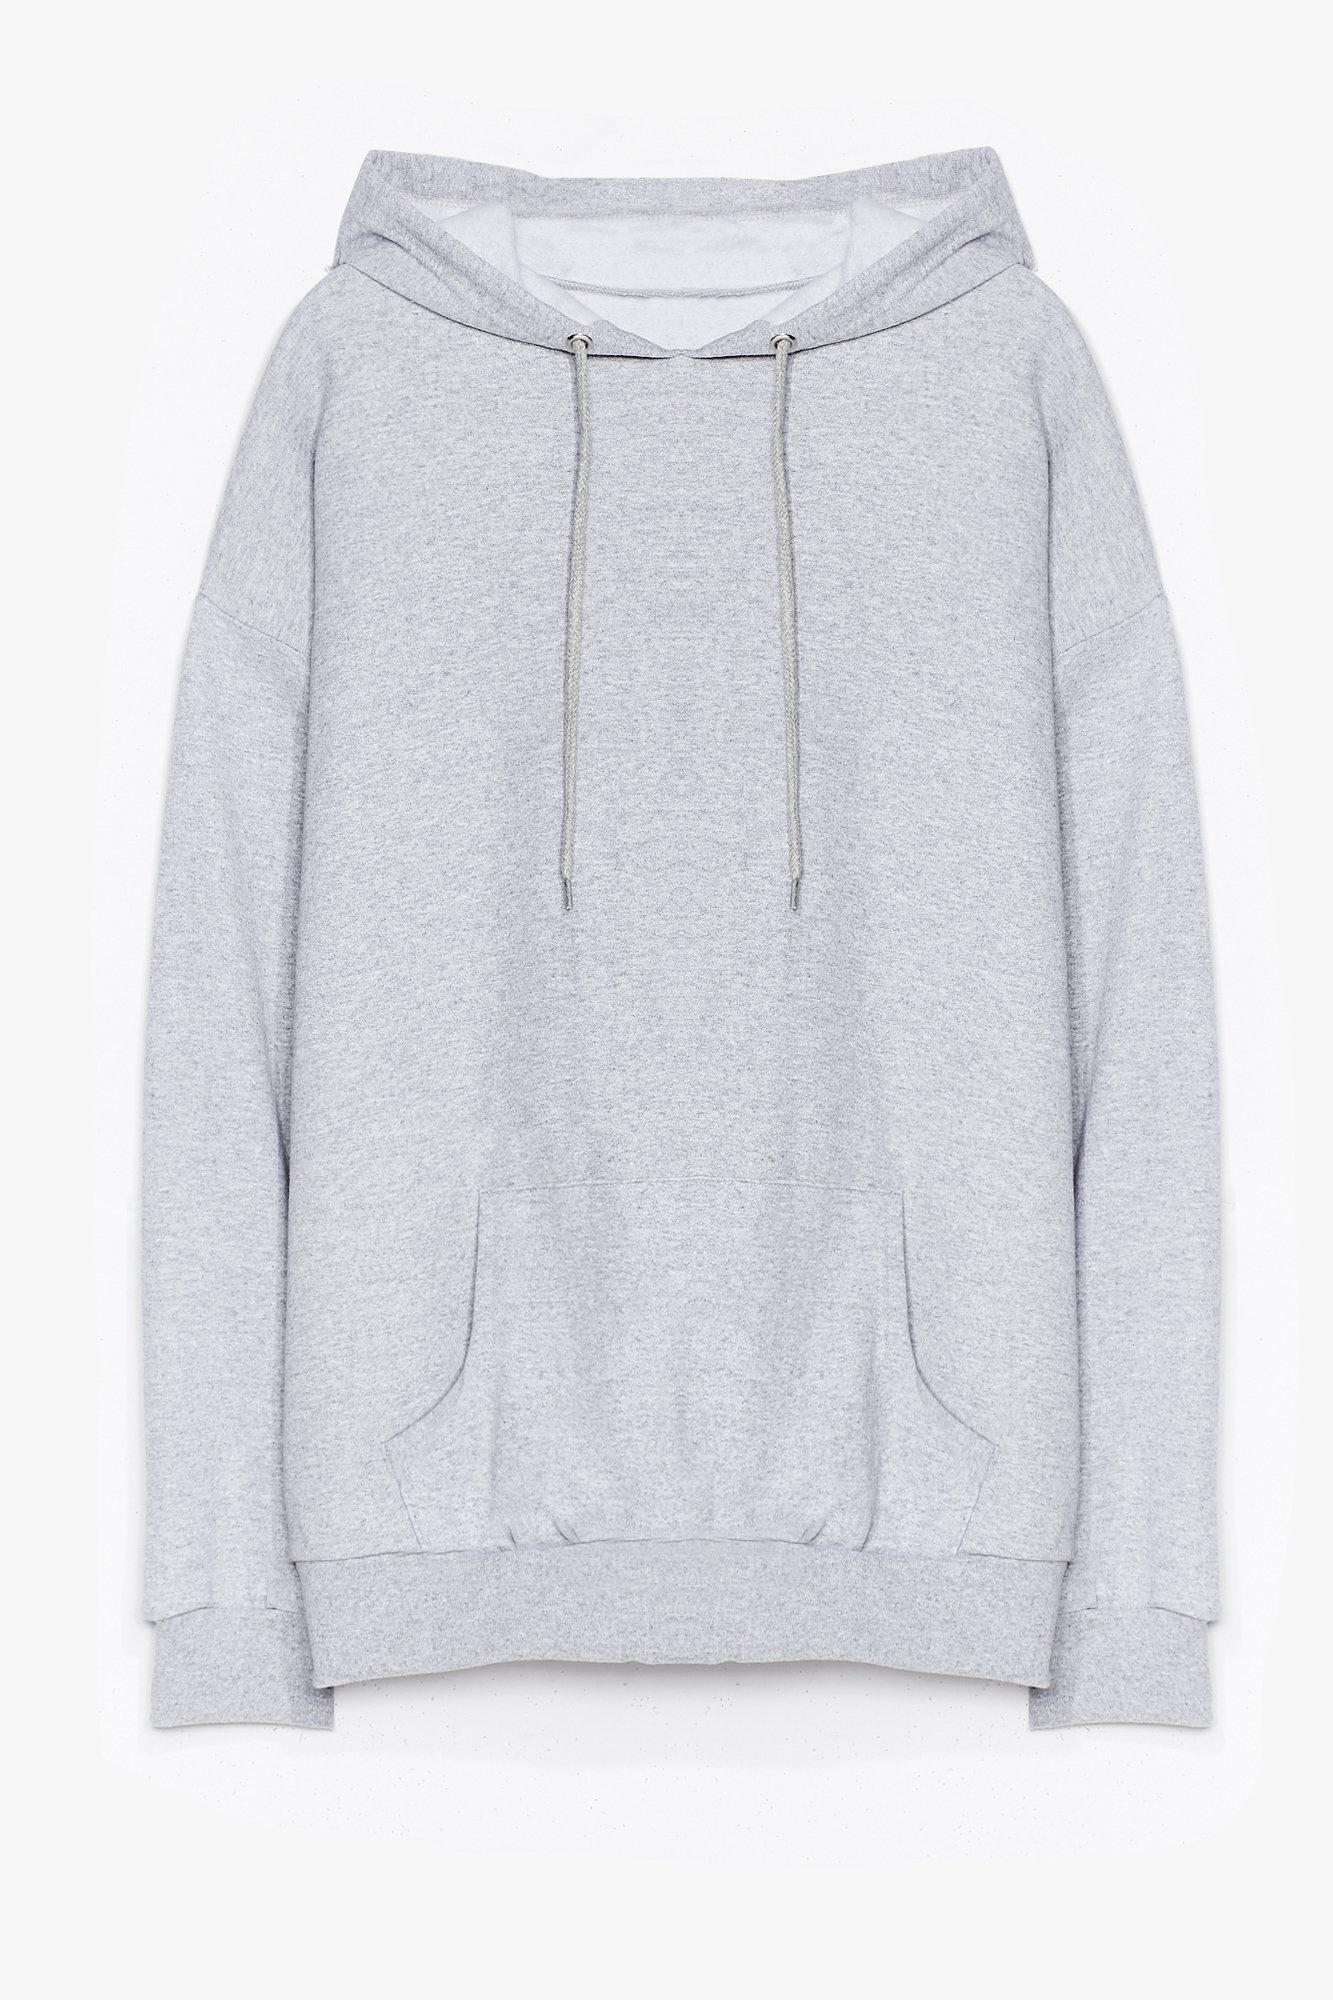 The Wait is Over-sized Plus Hoodie 4